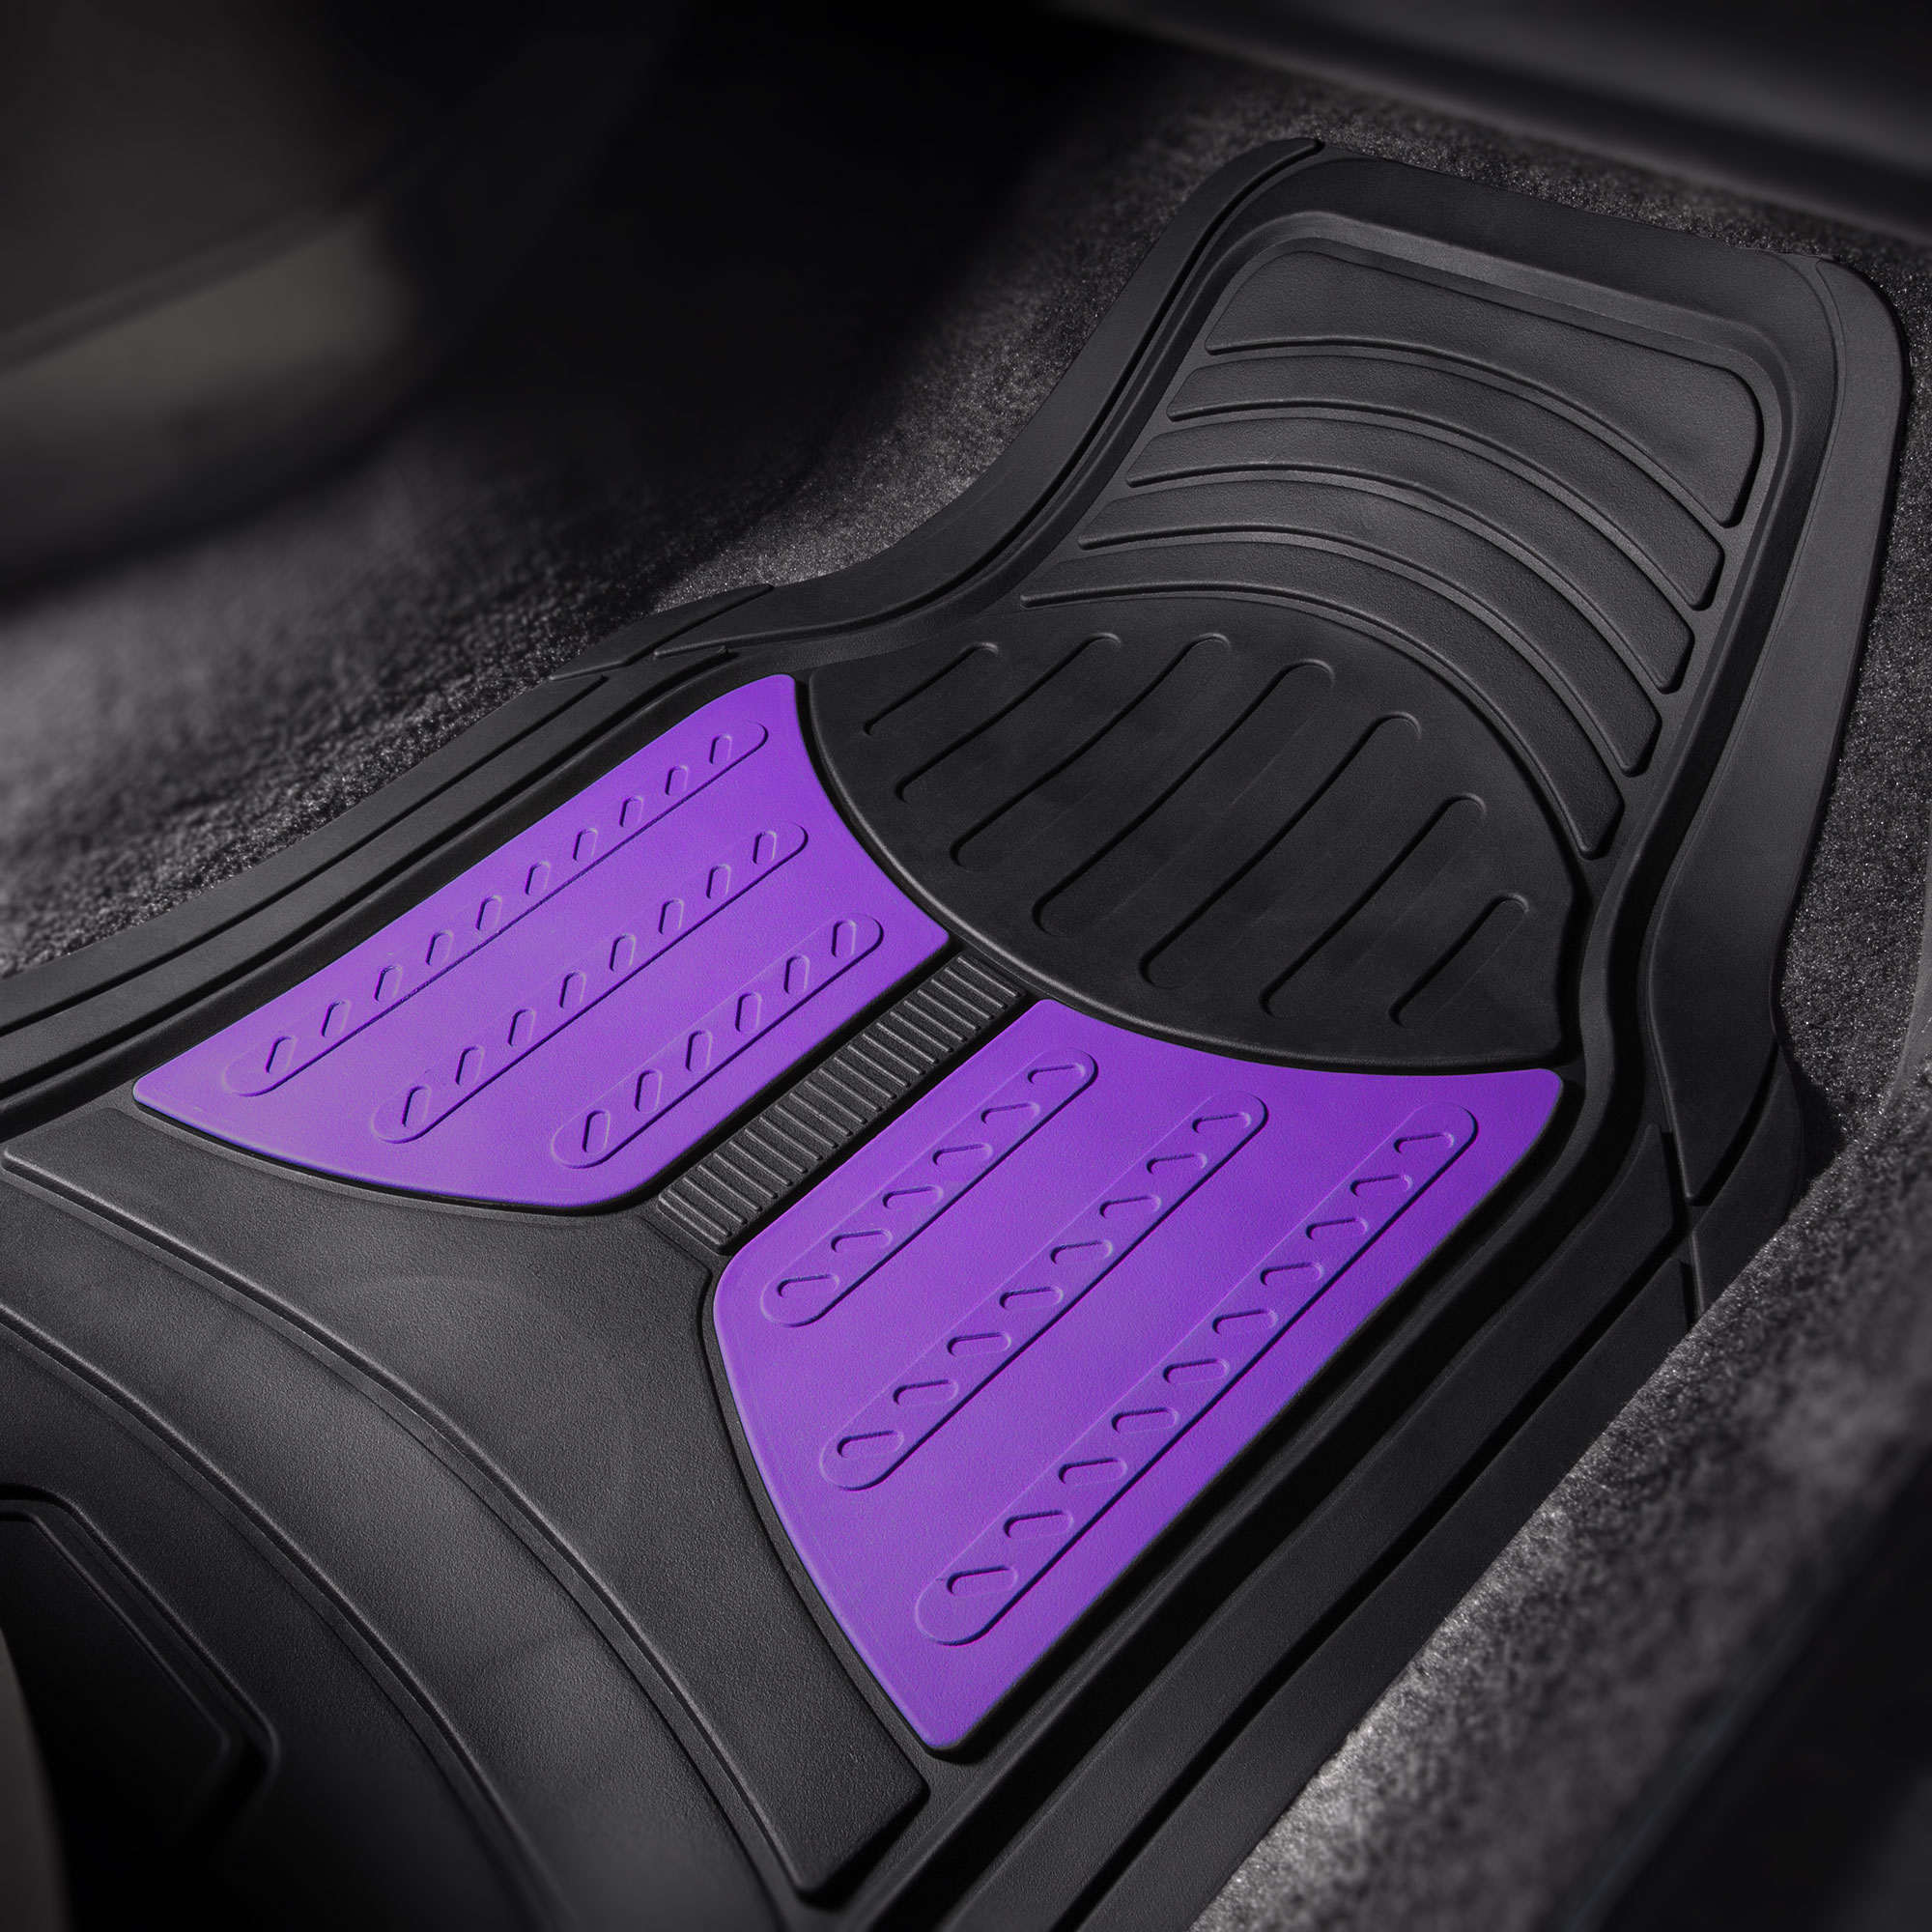 thumbnail 26 - Car Floor Mats for All Weather Rubber 2-Tone Design Heavy Duty - 4 Pc Set